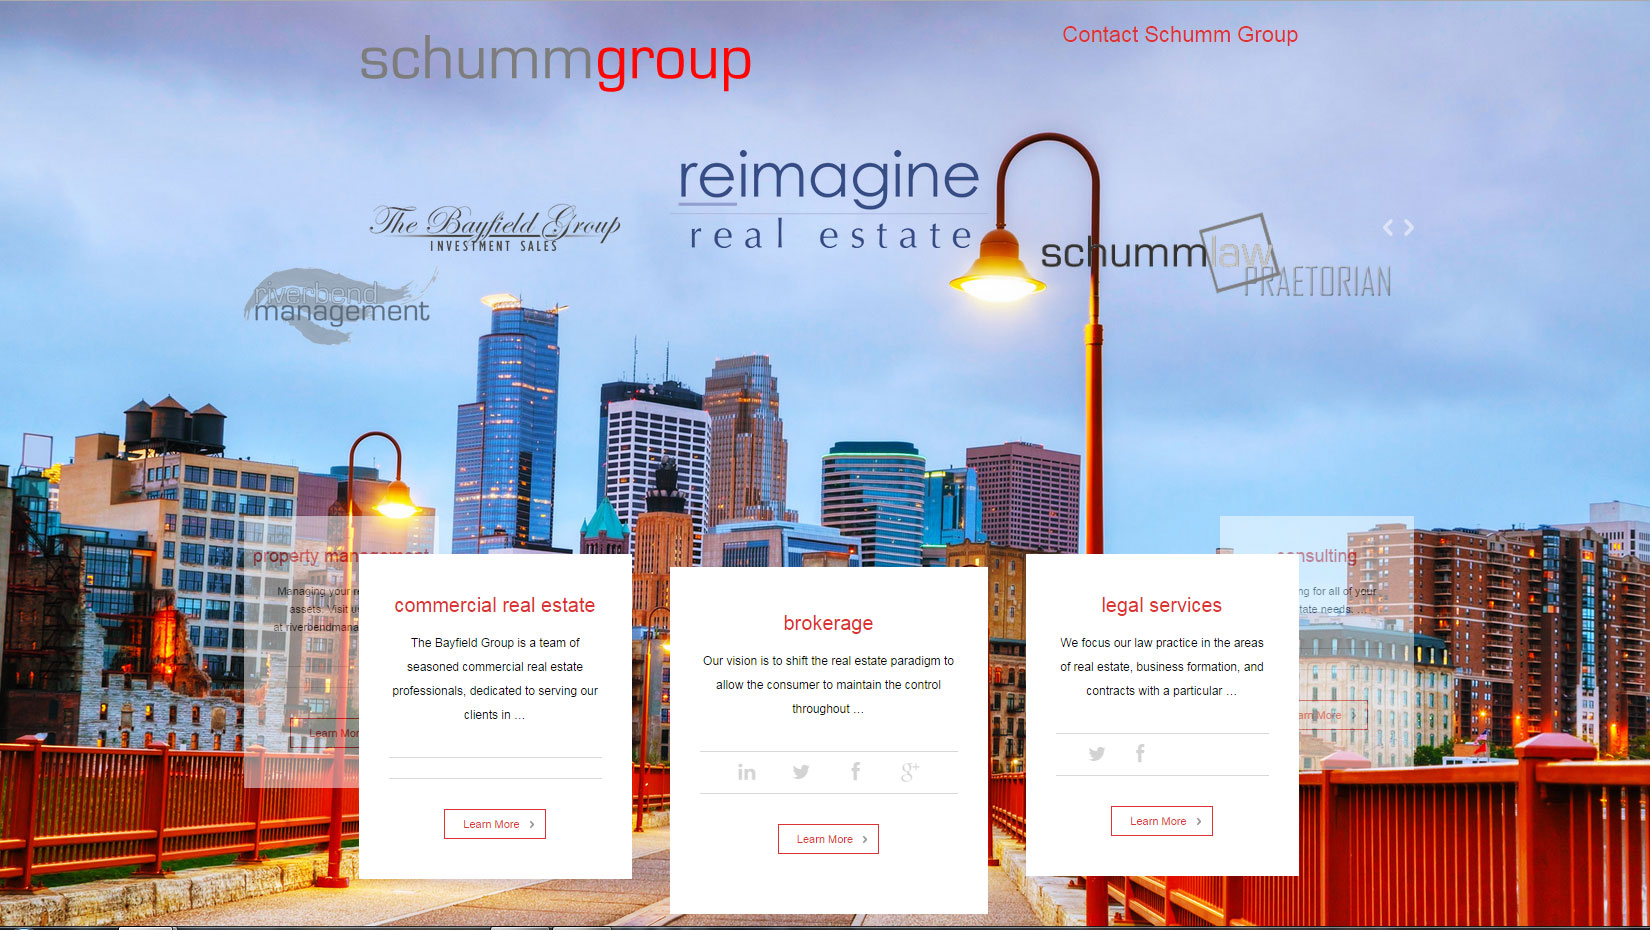 Schumm Group screenshot